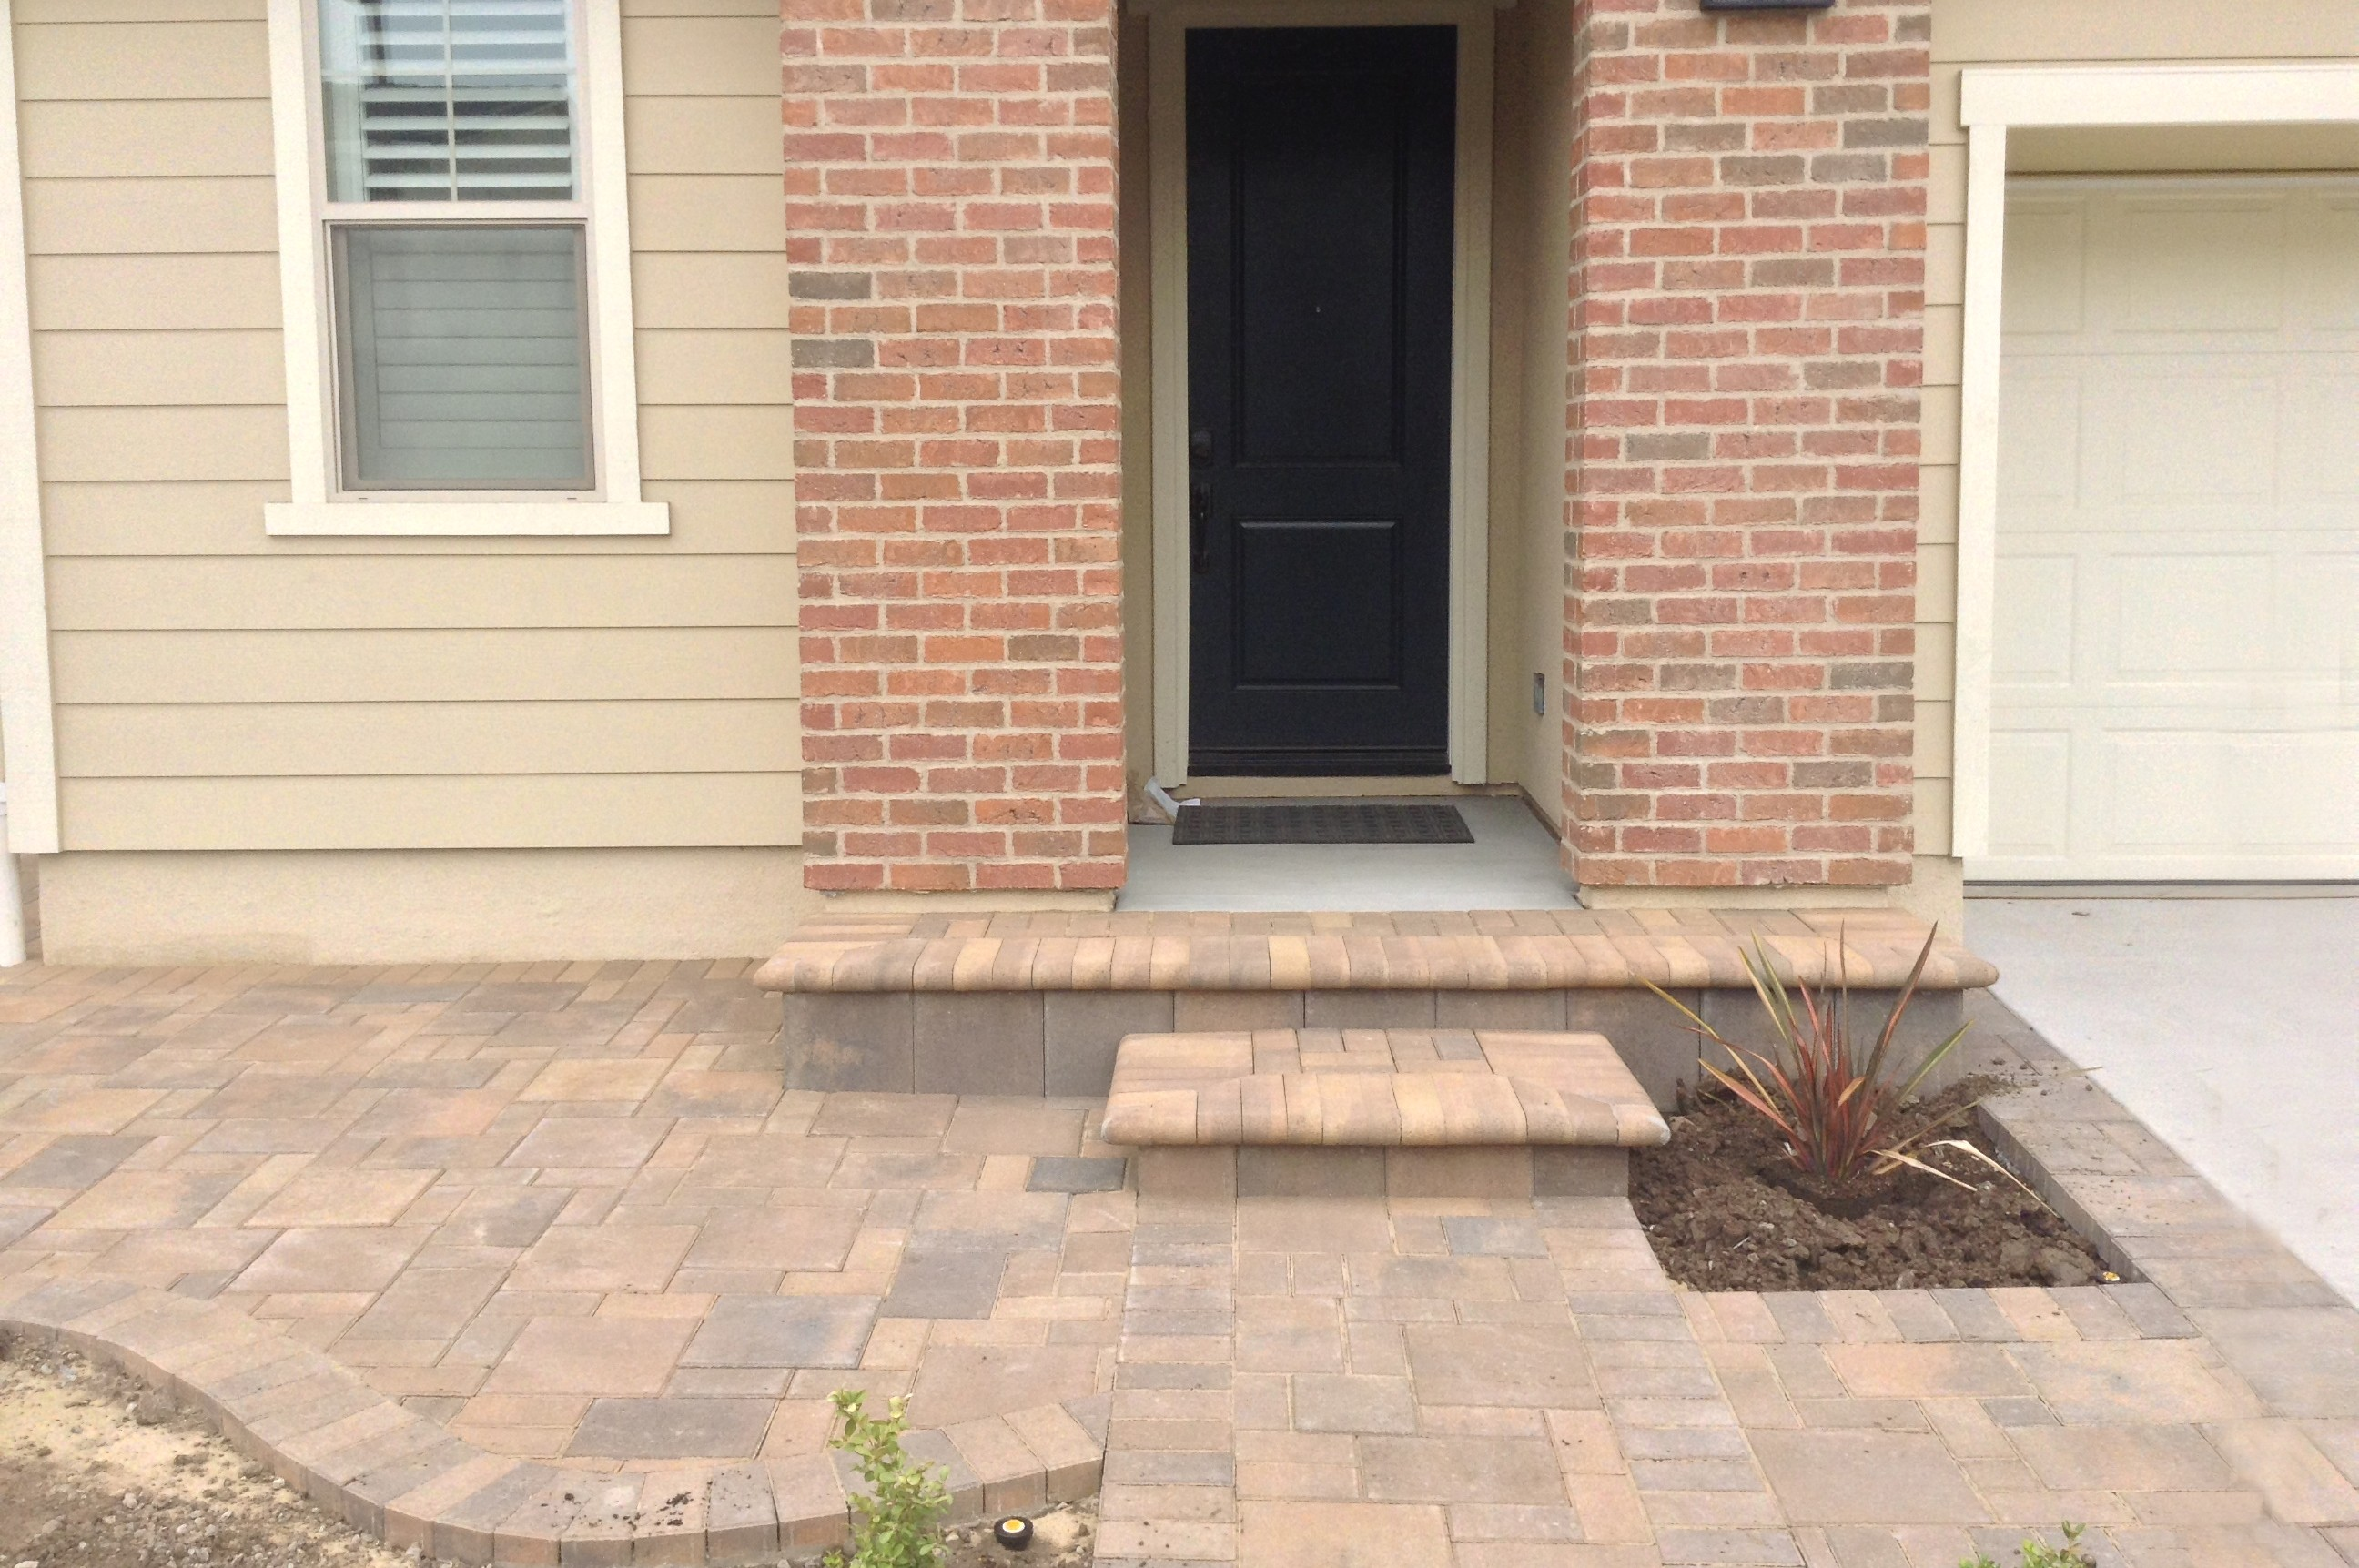 How Many Landscaping Bricks Do I Need : Orange county landscape contractor company tru services